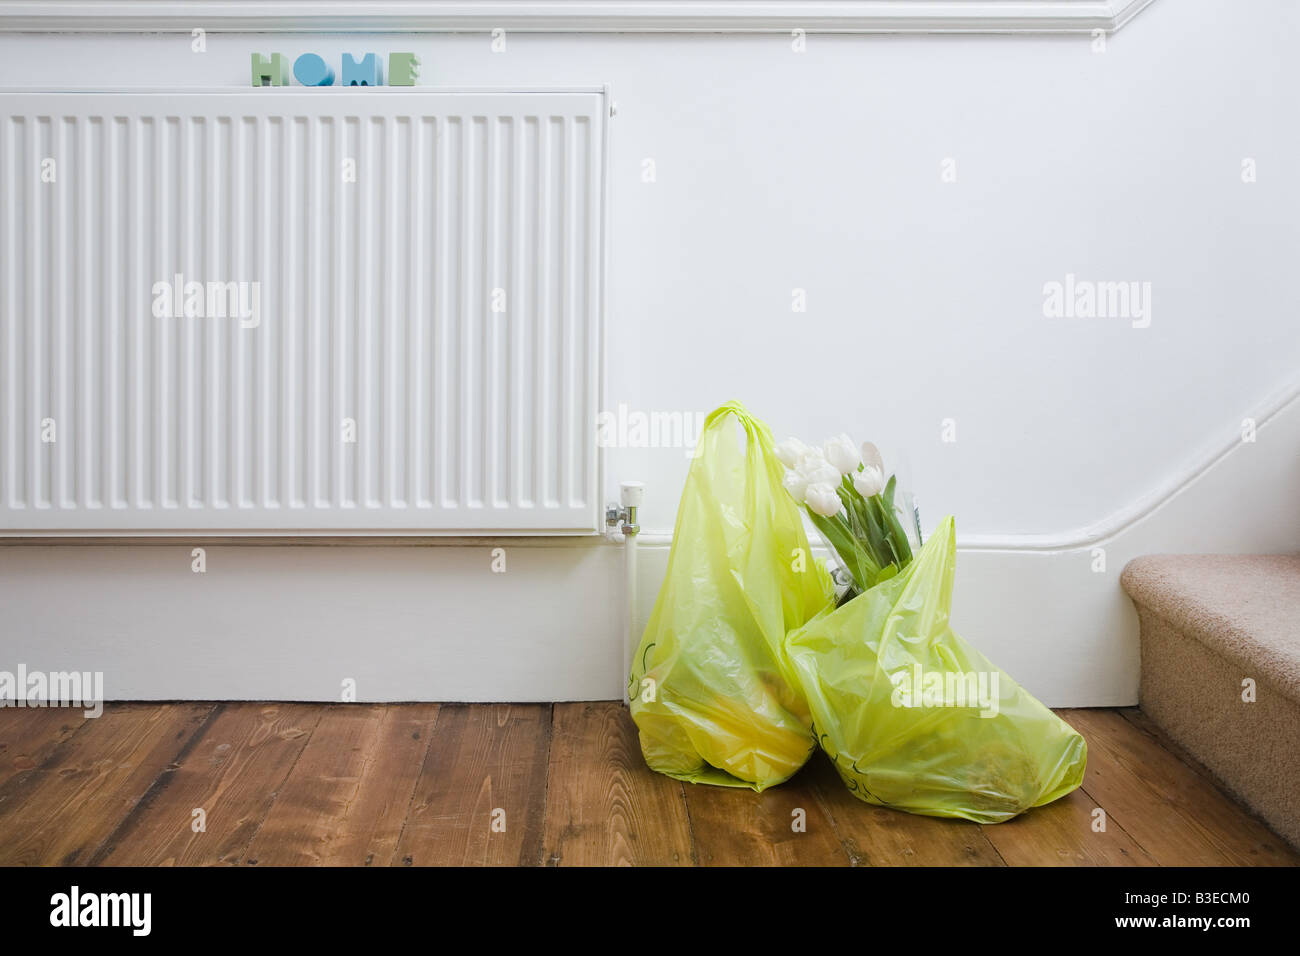 Shopping bags in house - Stock Image